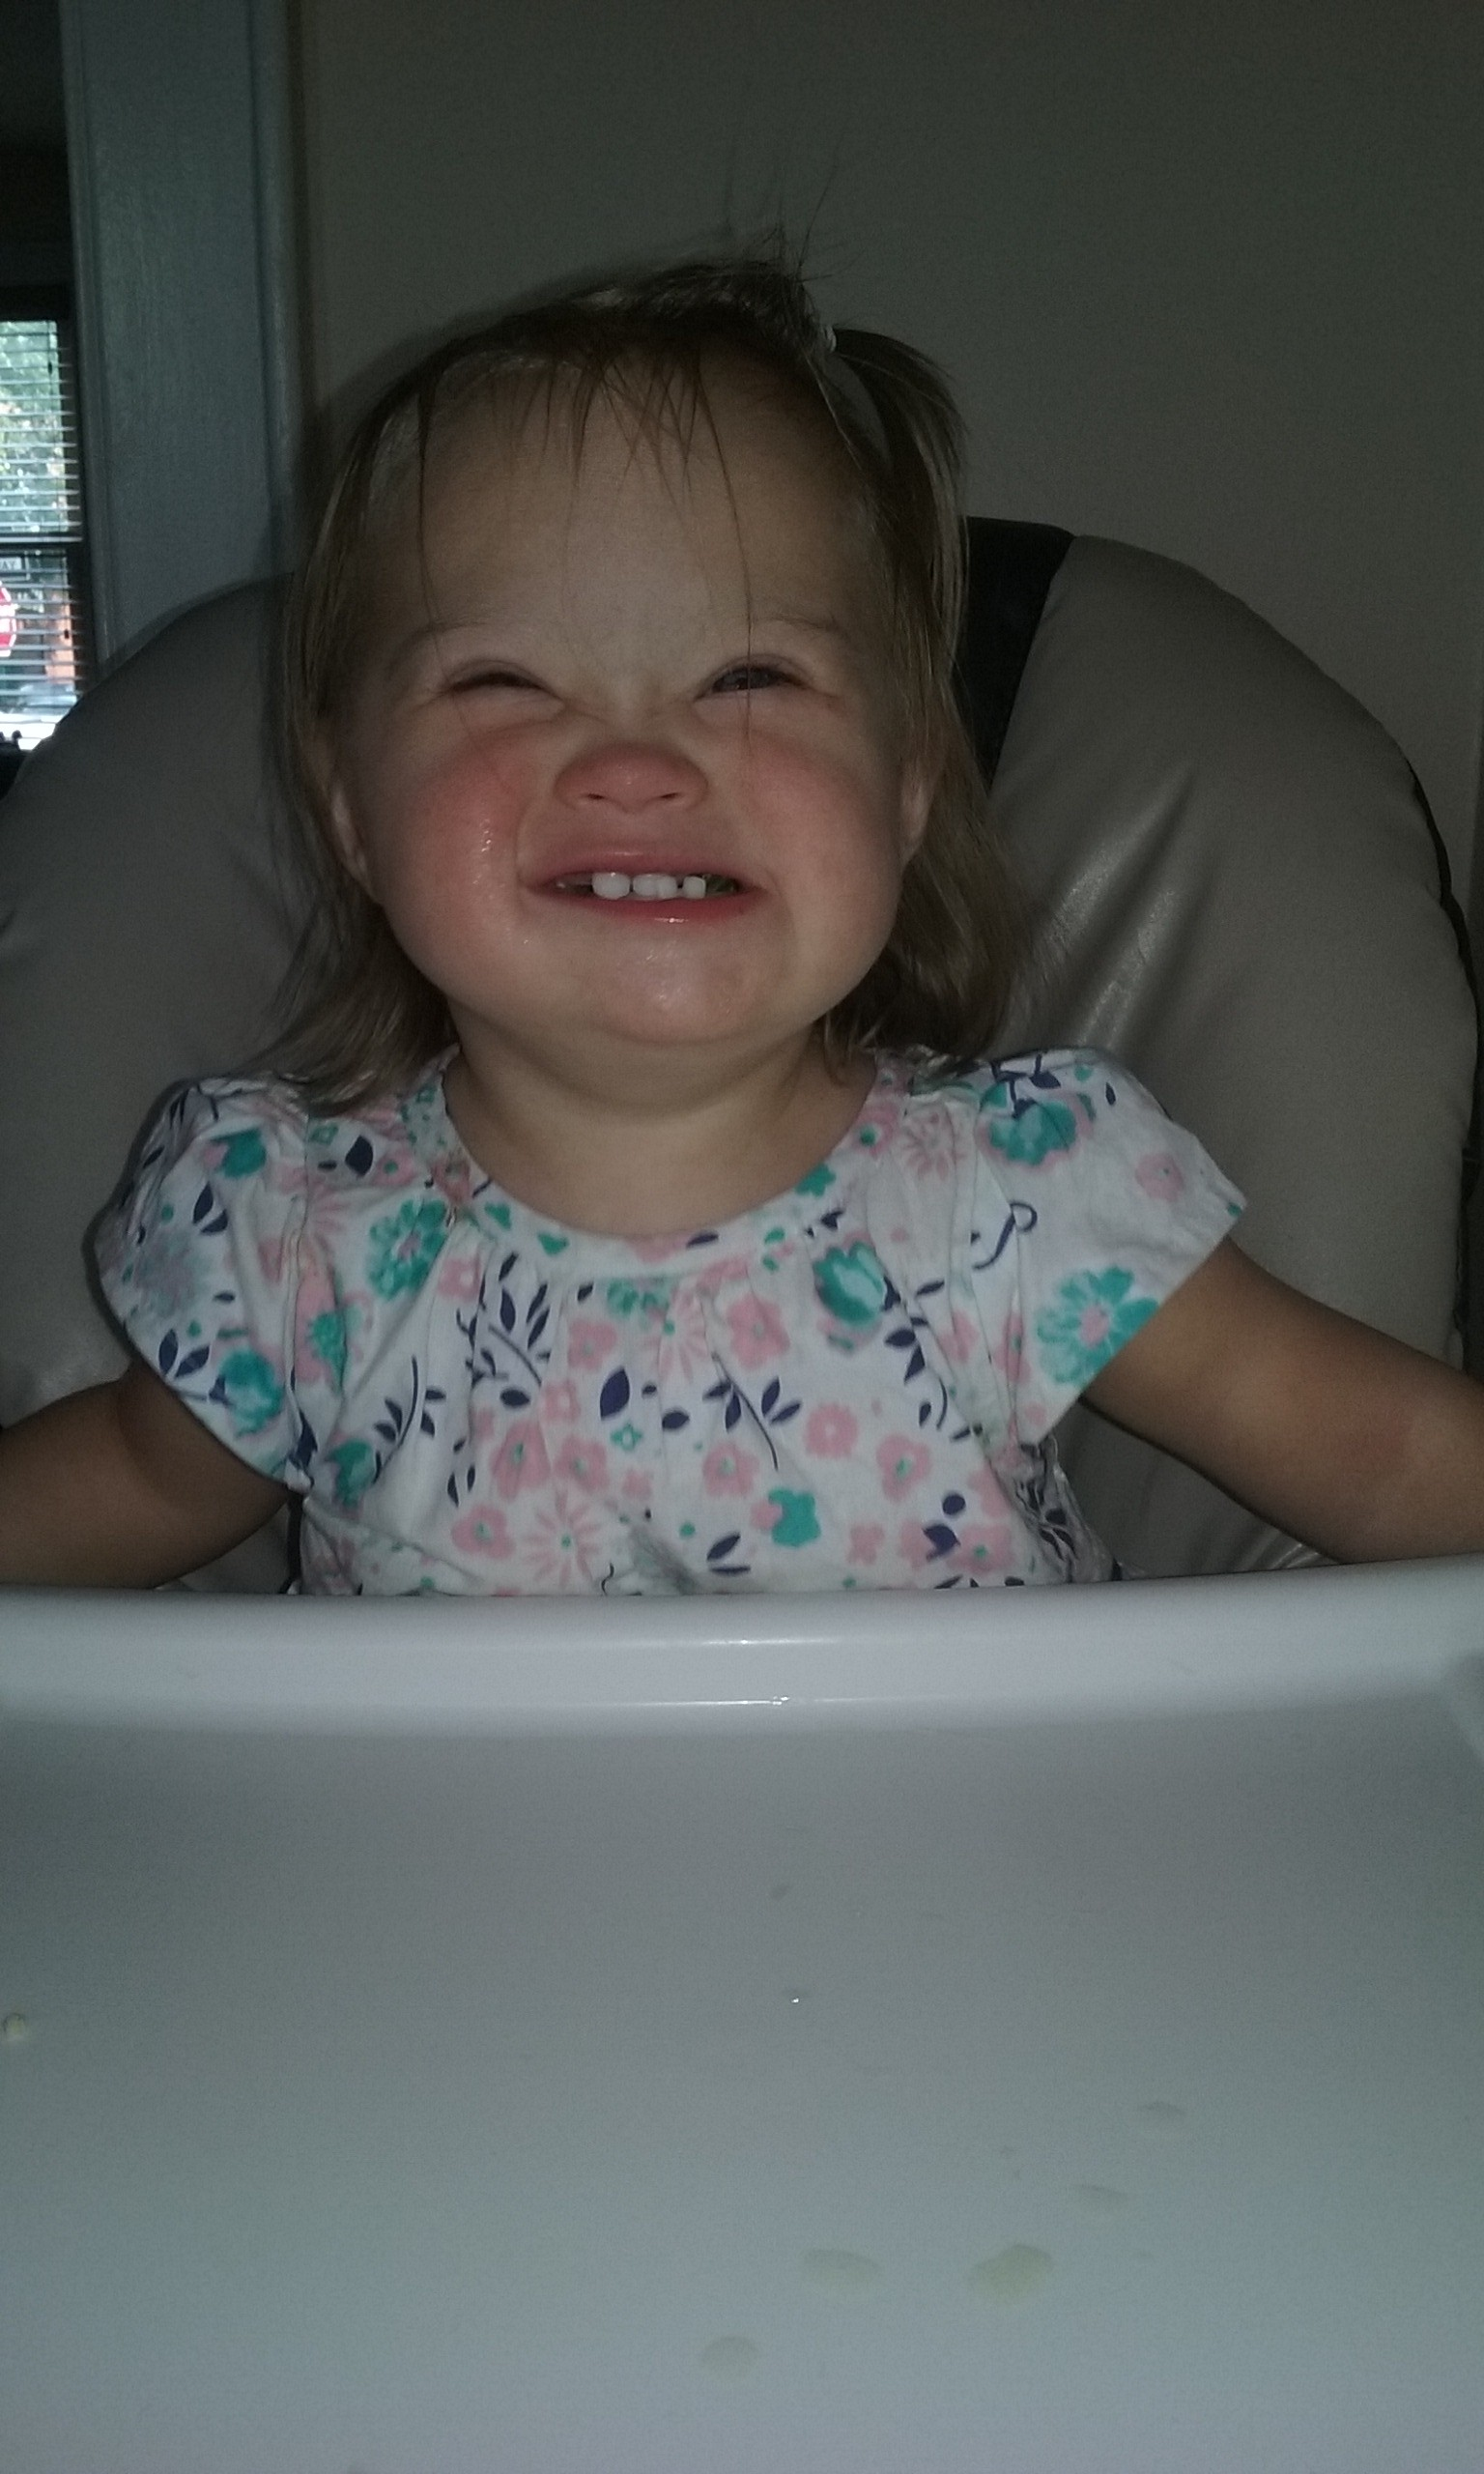 baby with Down syndrome smiling in a high chair